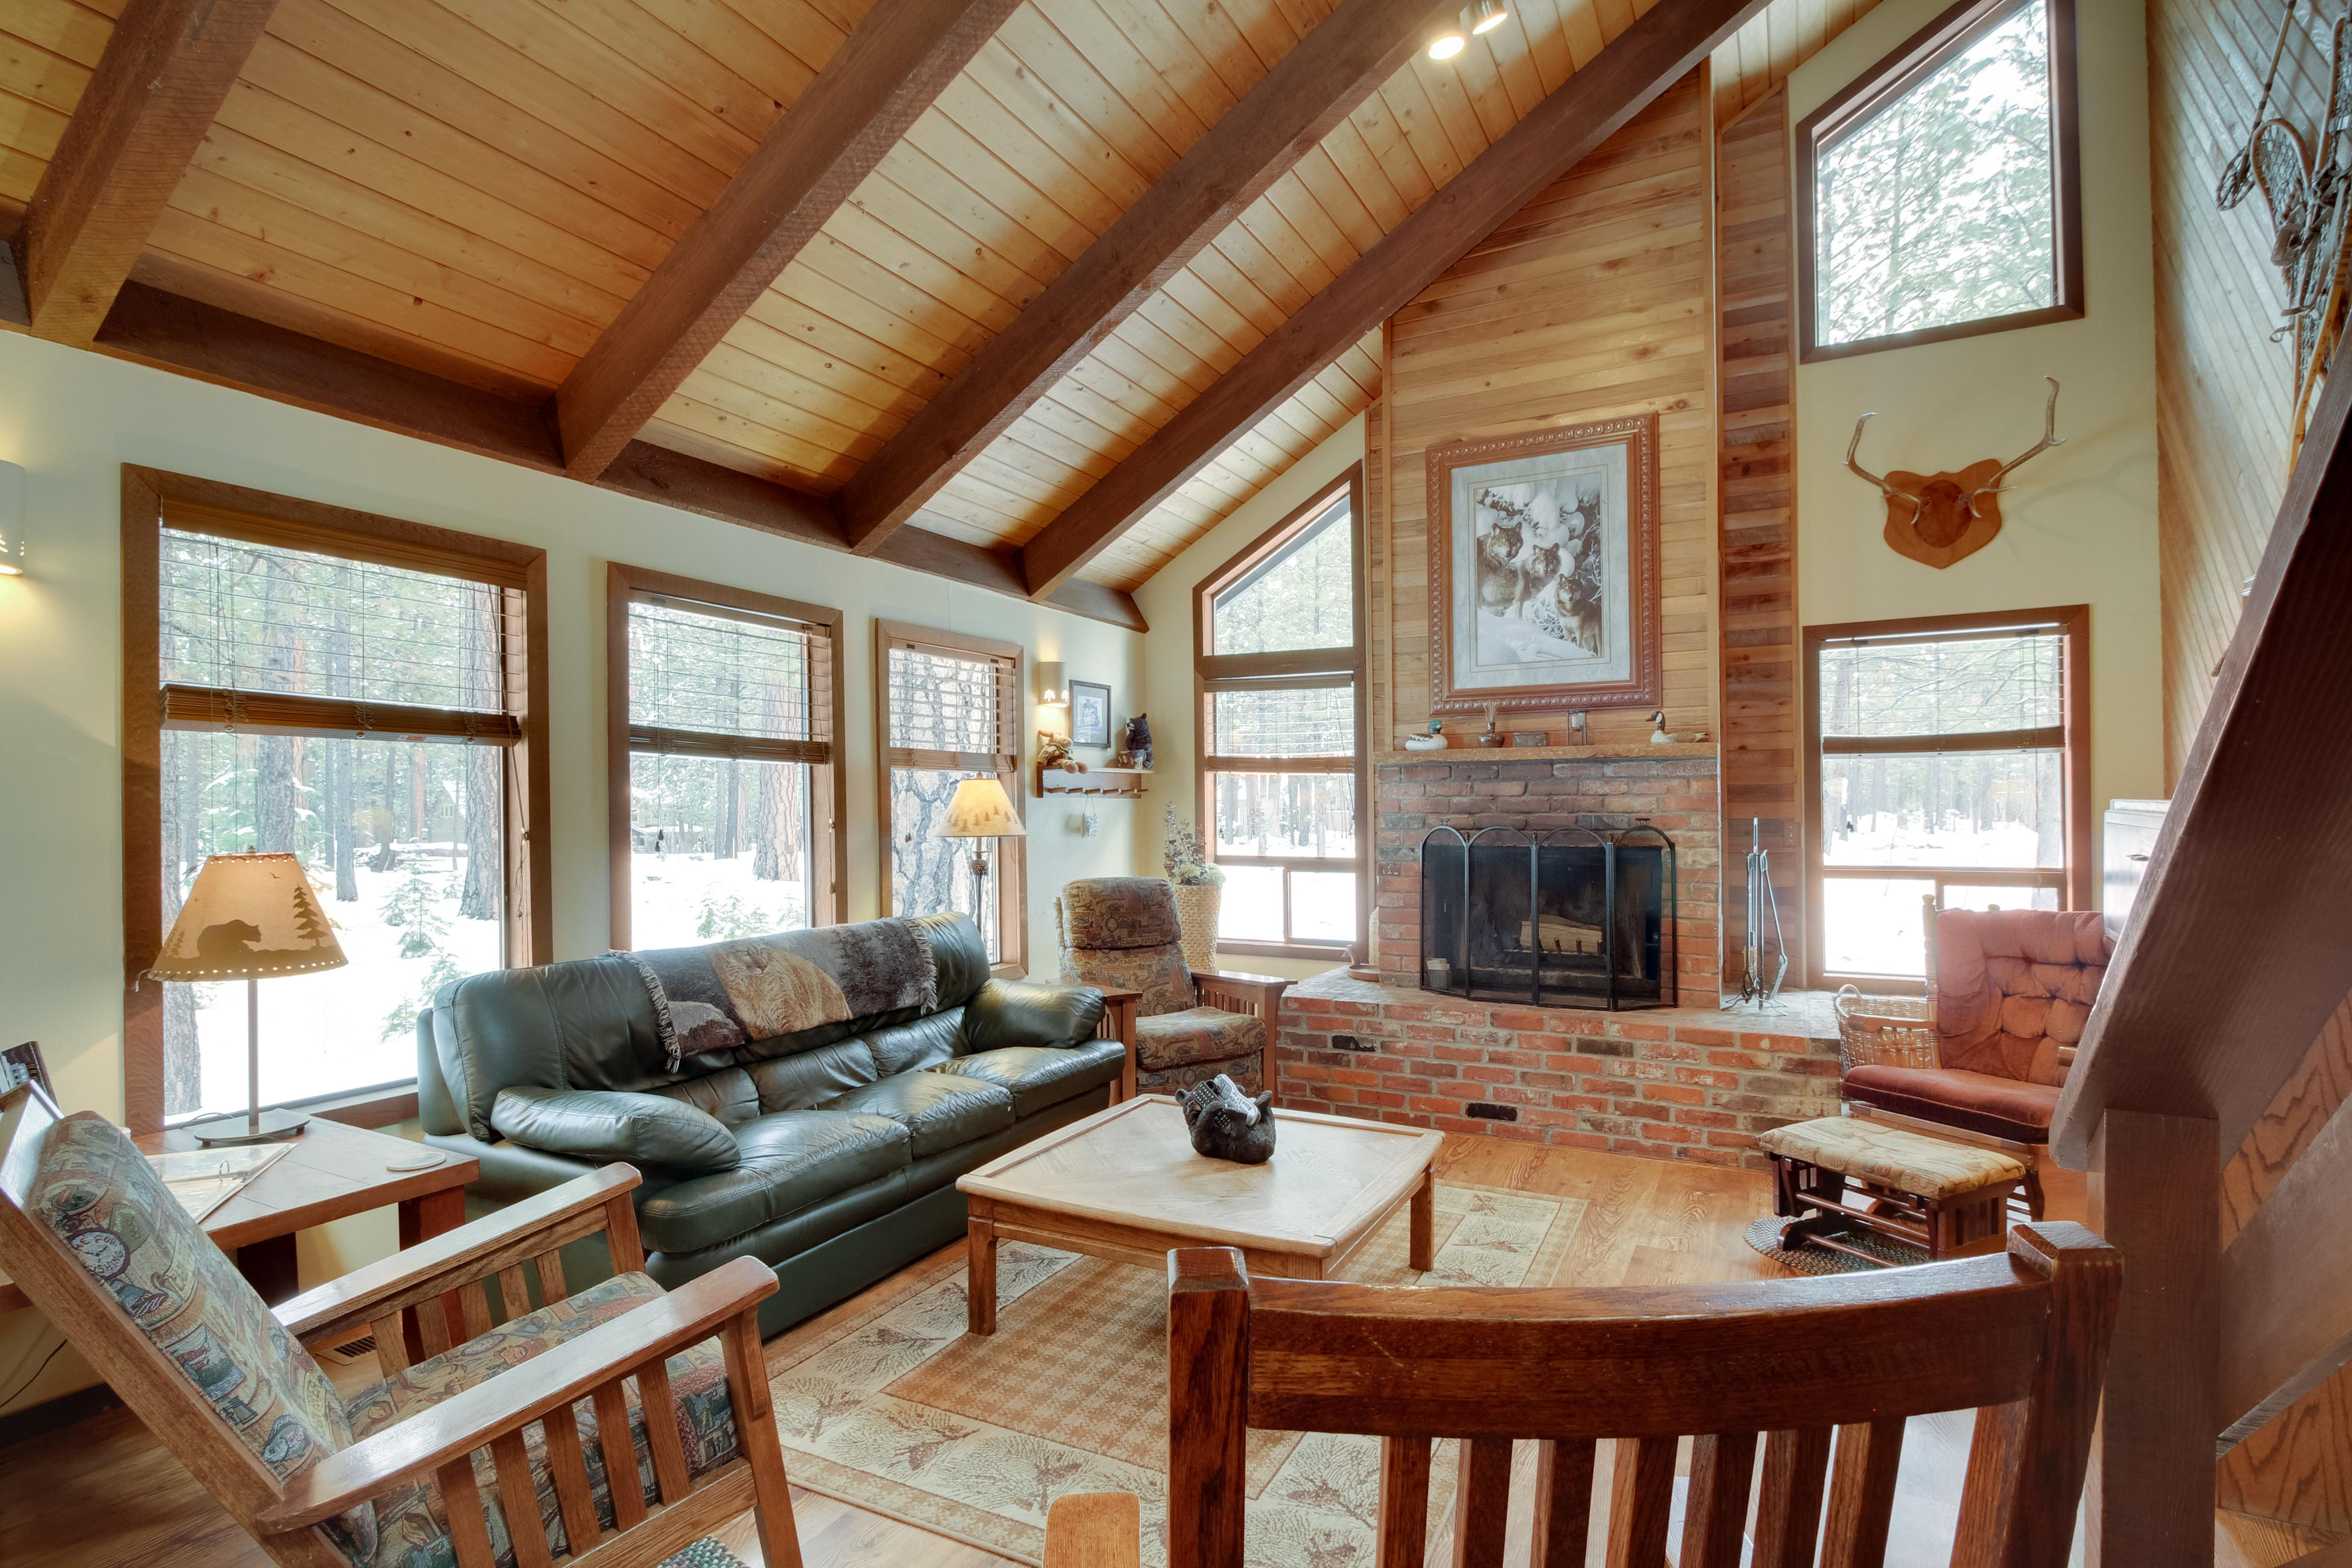 Property Image 1 - Cabin in the Pines - Black Butte Ranch SM 144